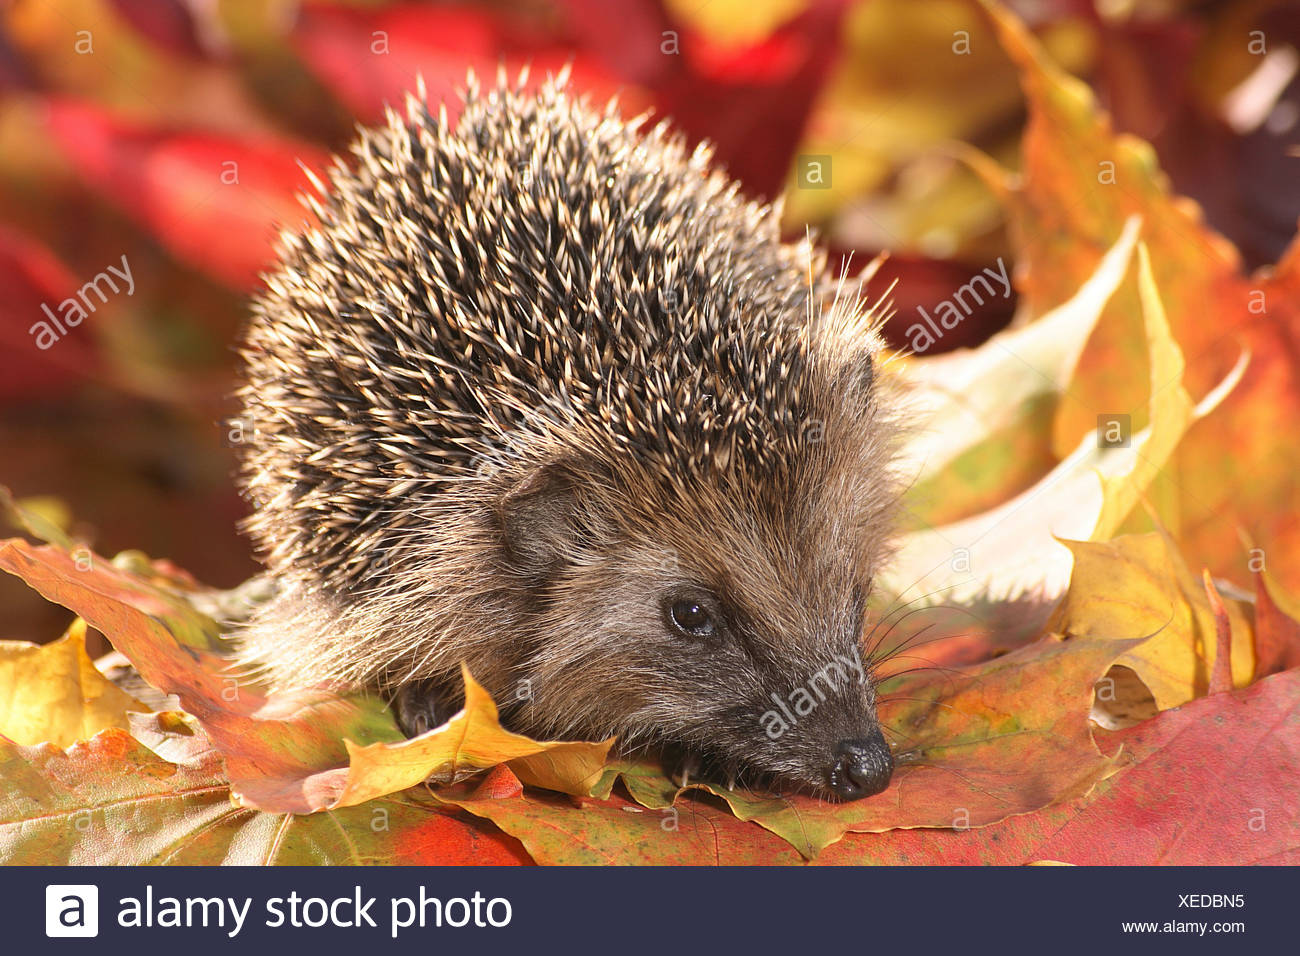 European Hedgehog (Erinaceus europaeus) in autumn leaves Stock Photo